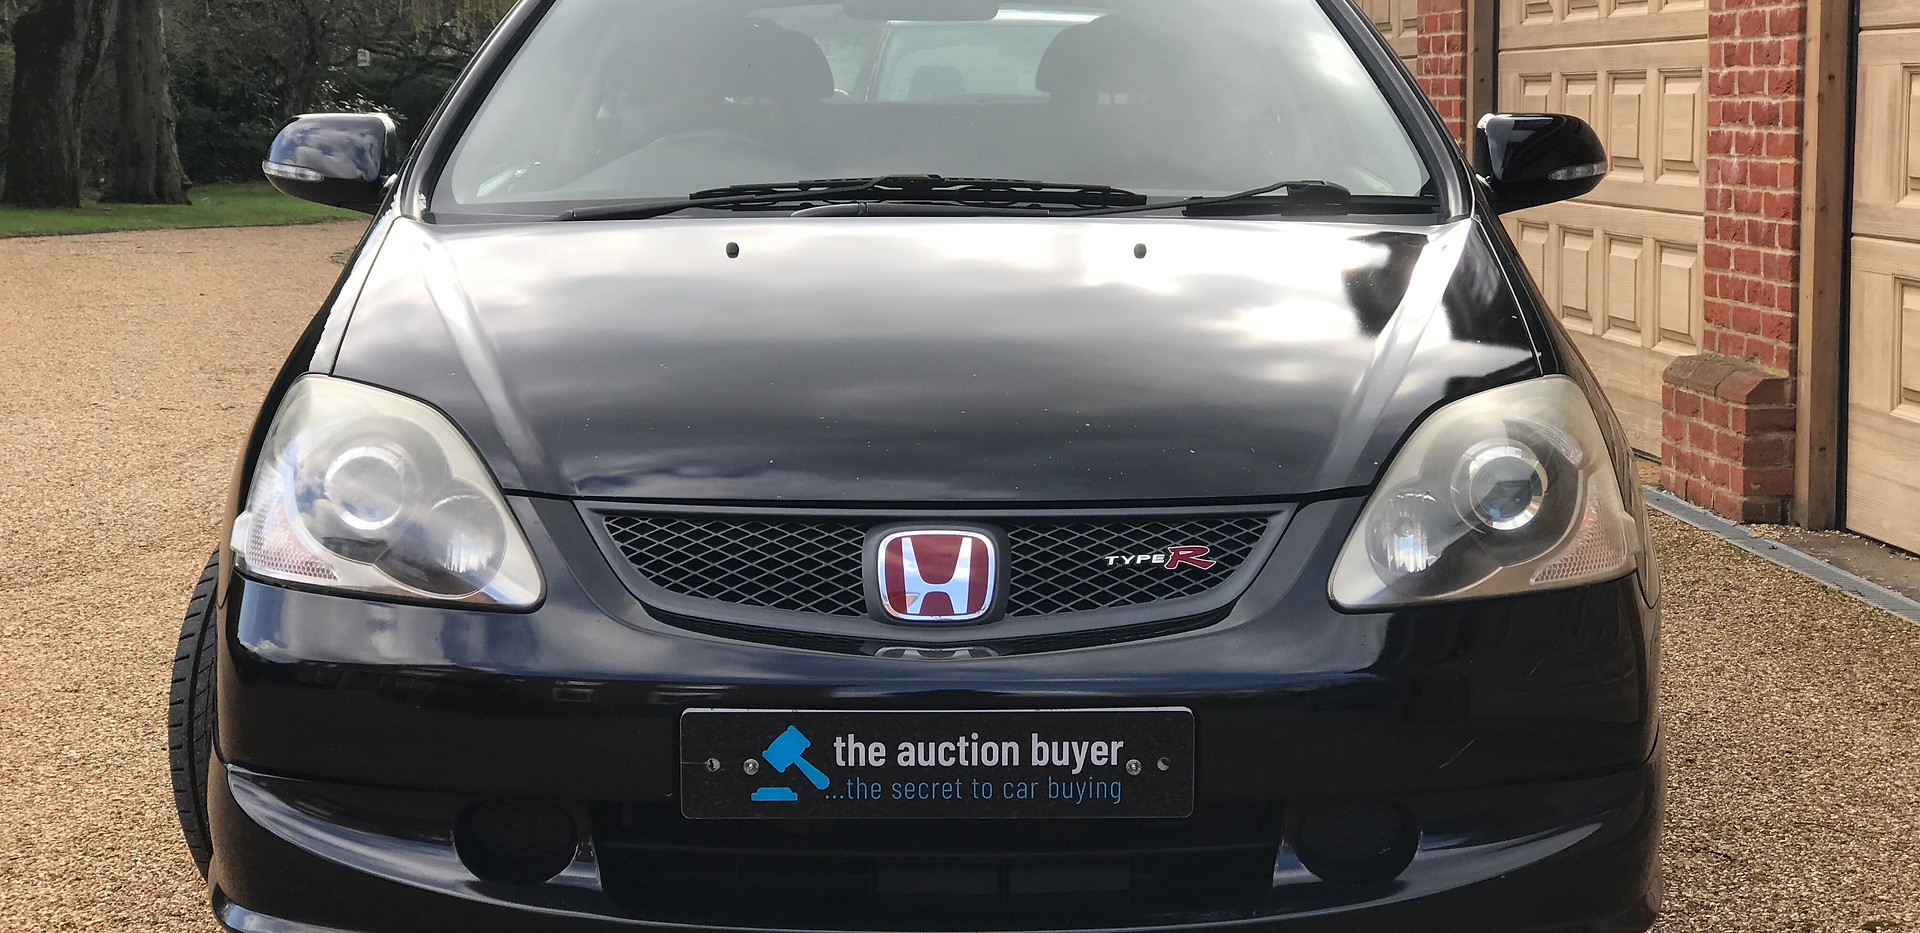 Honda Civic Type R | Sourced by Theauctionbuyer.com